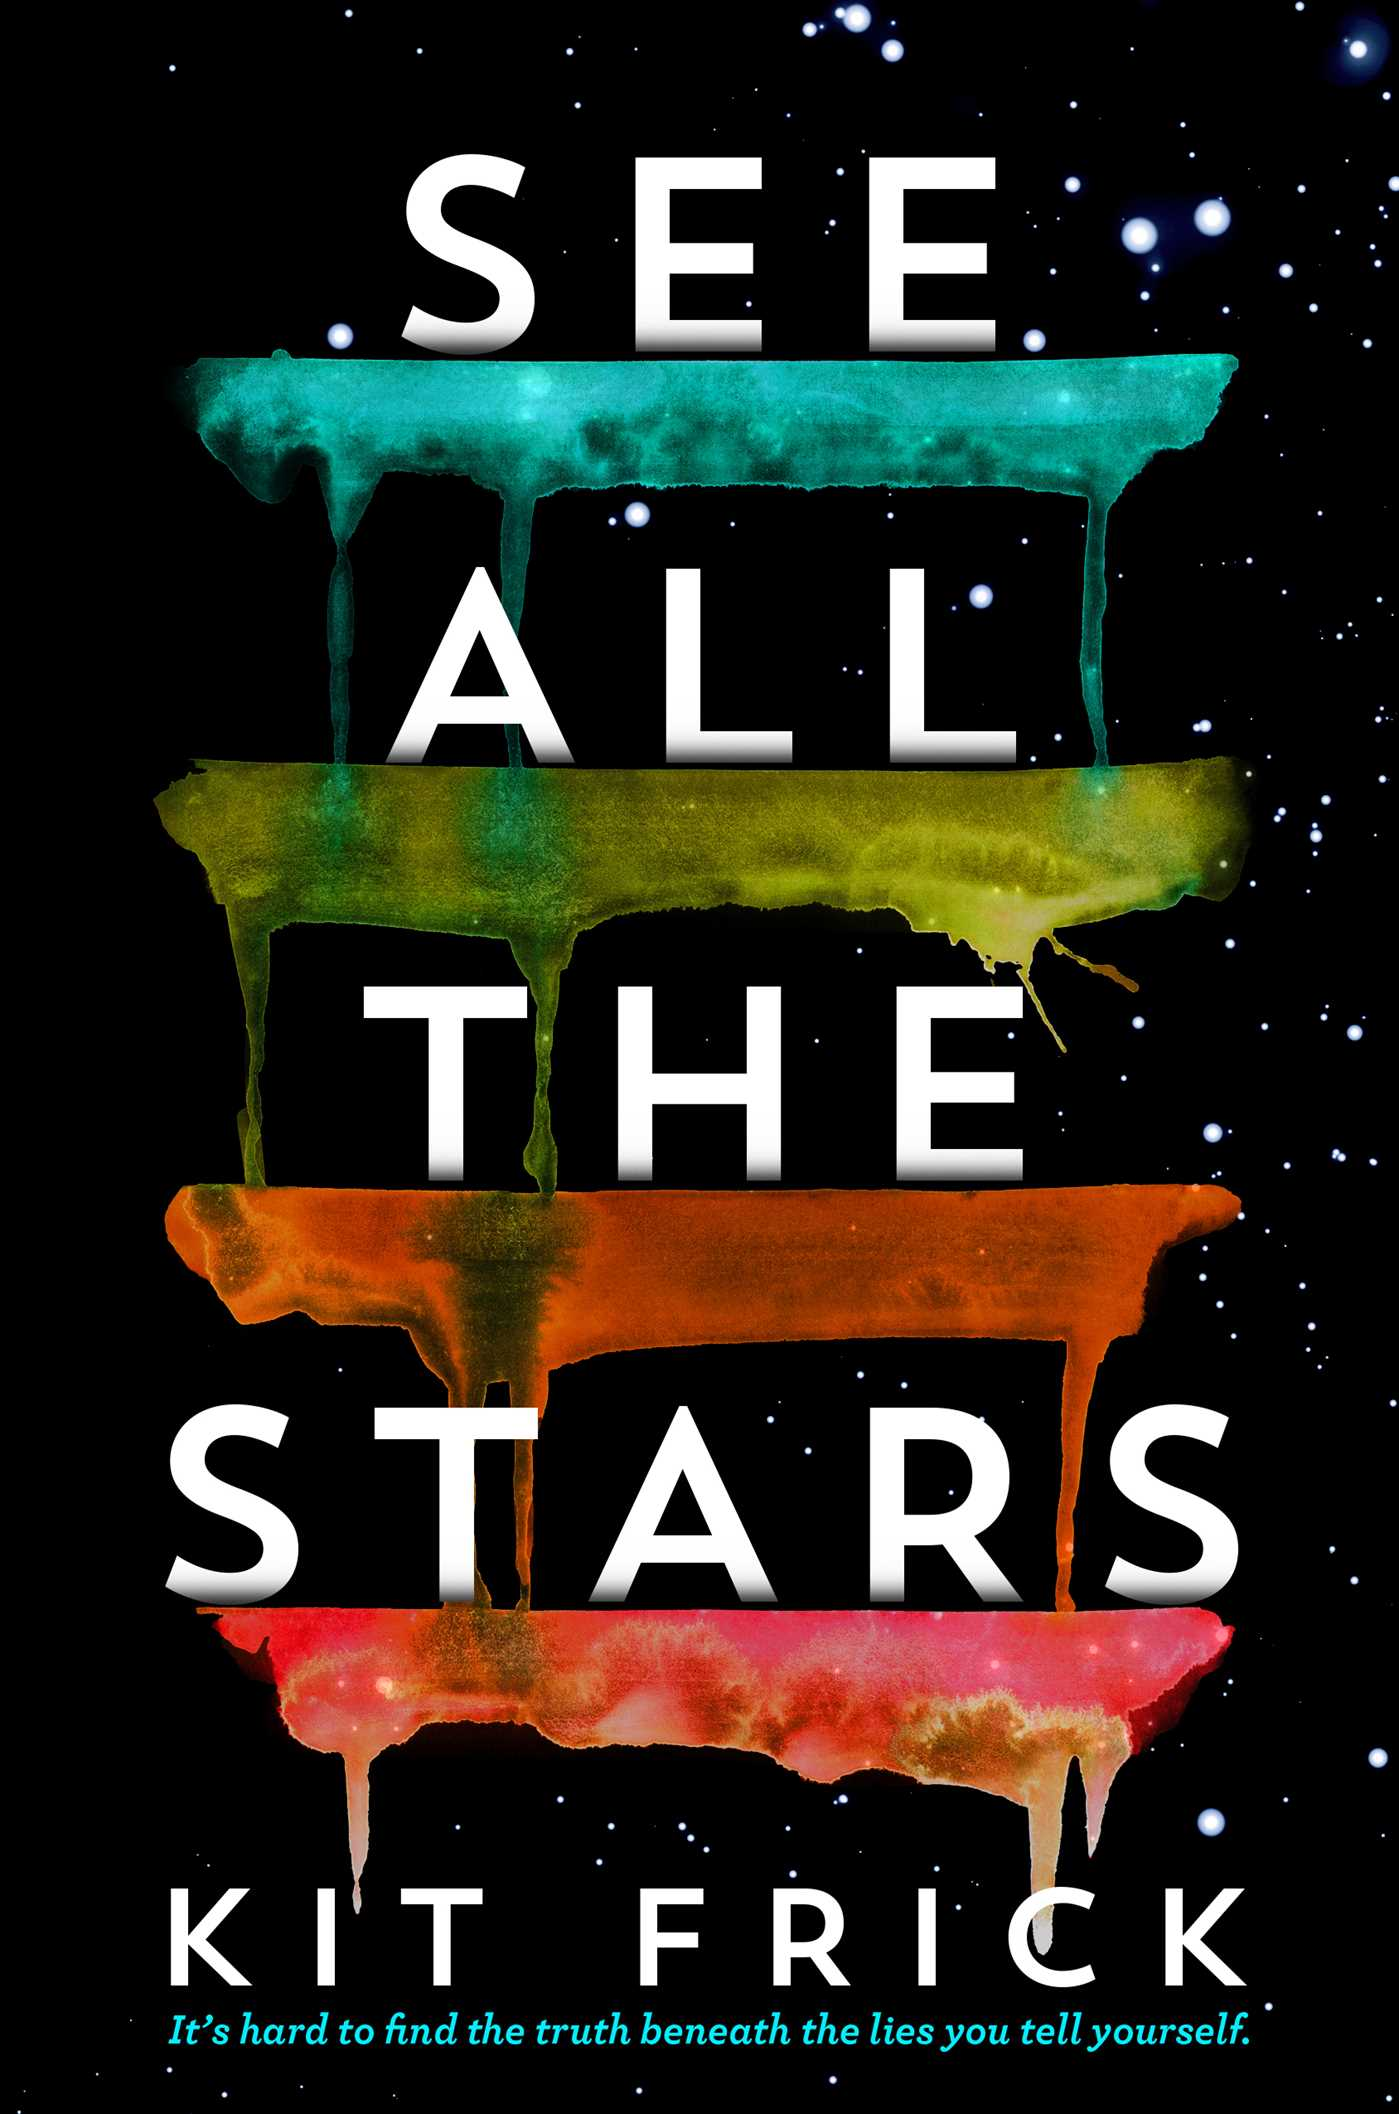 See all the stars 9781534404373 hr